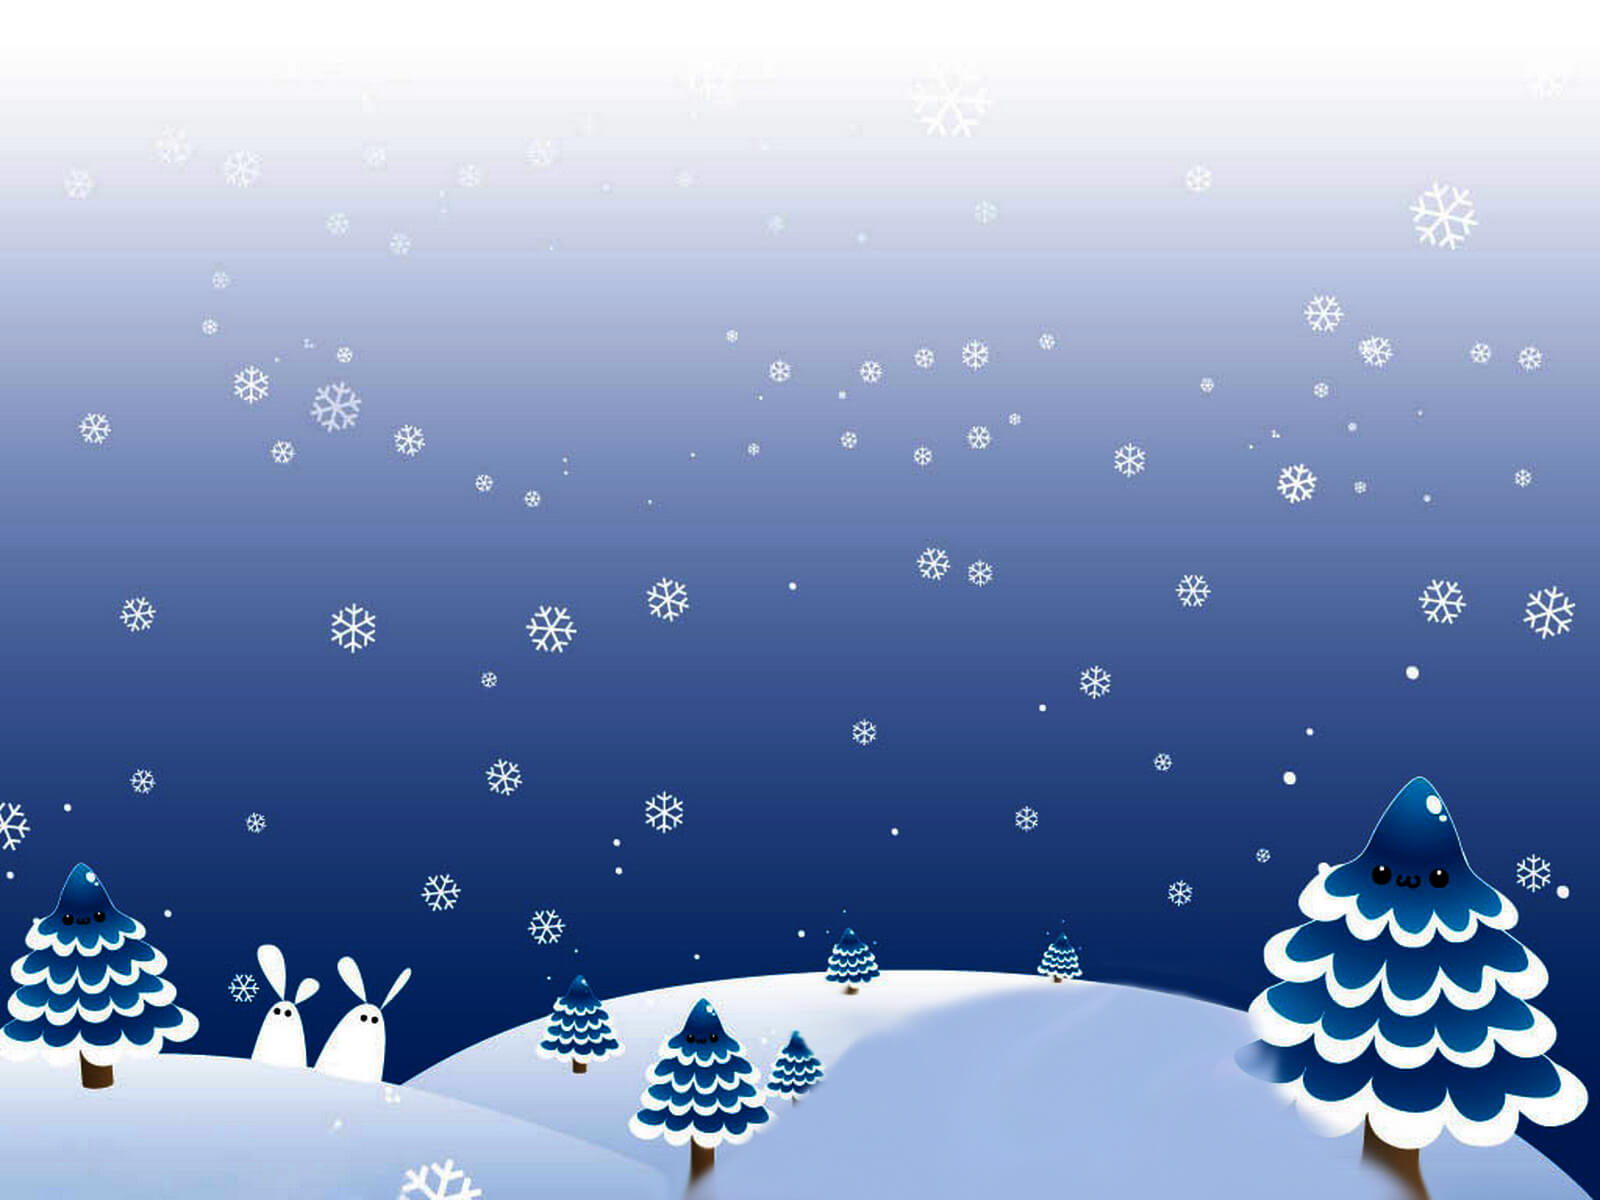 Winter Christmas Day Backgrounds For Powerpoint - Christmas regarding Snow Powerpoint Template